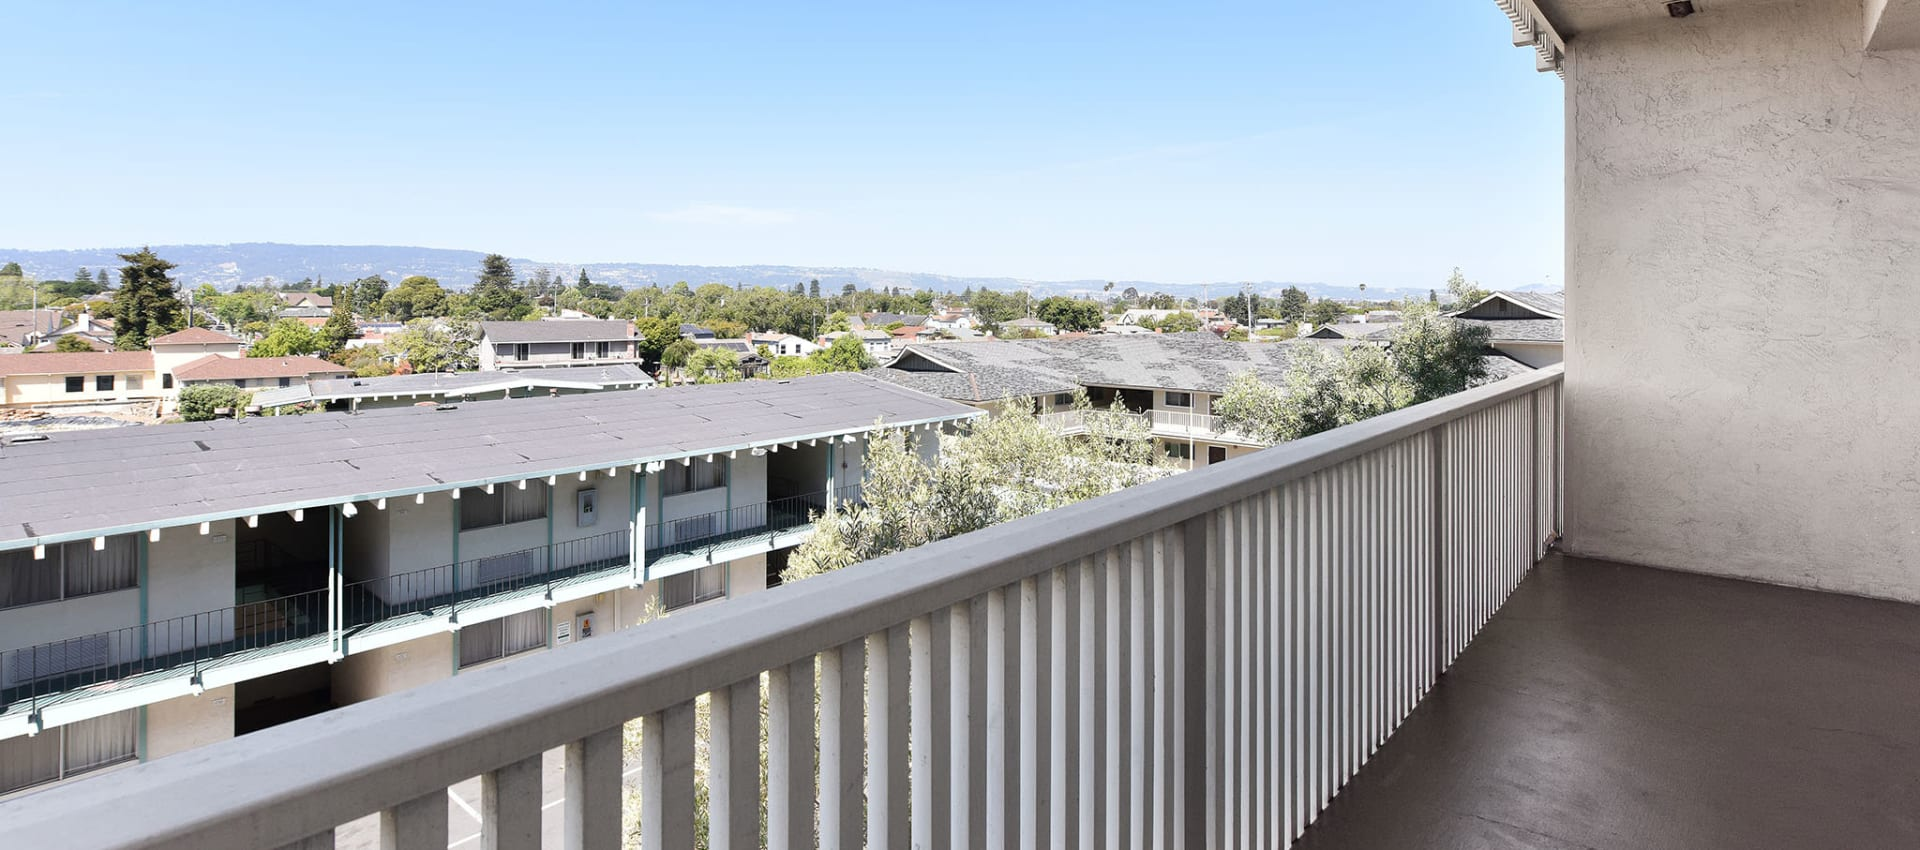 Learn about our neighborhood at Tower Apartment Homes in Alameda, CA on our website